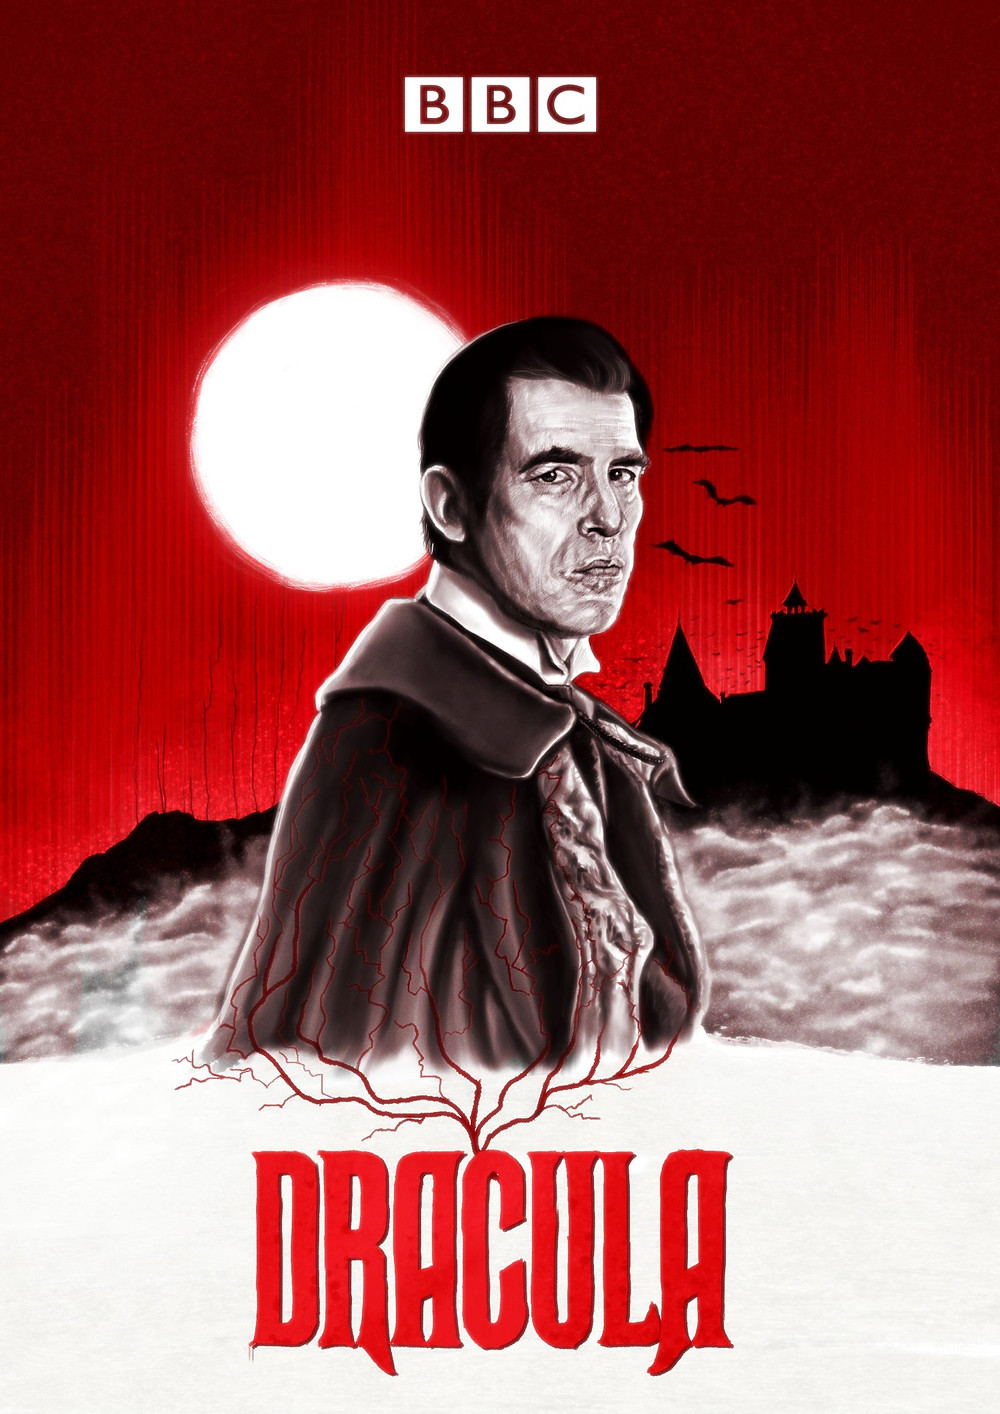 BBC Channel bring fresh blood to the iconic vampire, Dracula for the bloody winter.